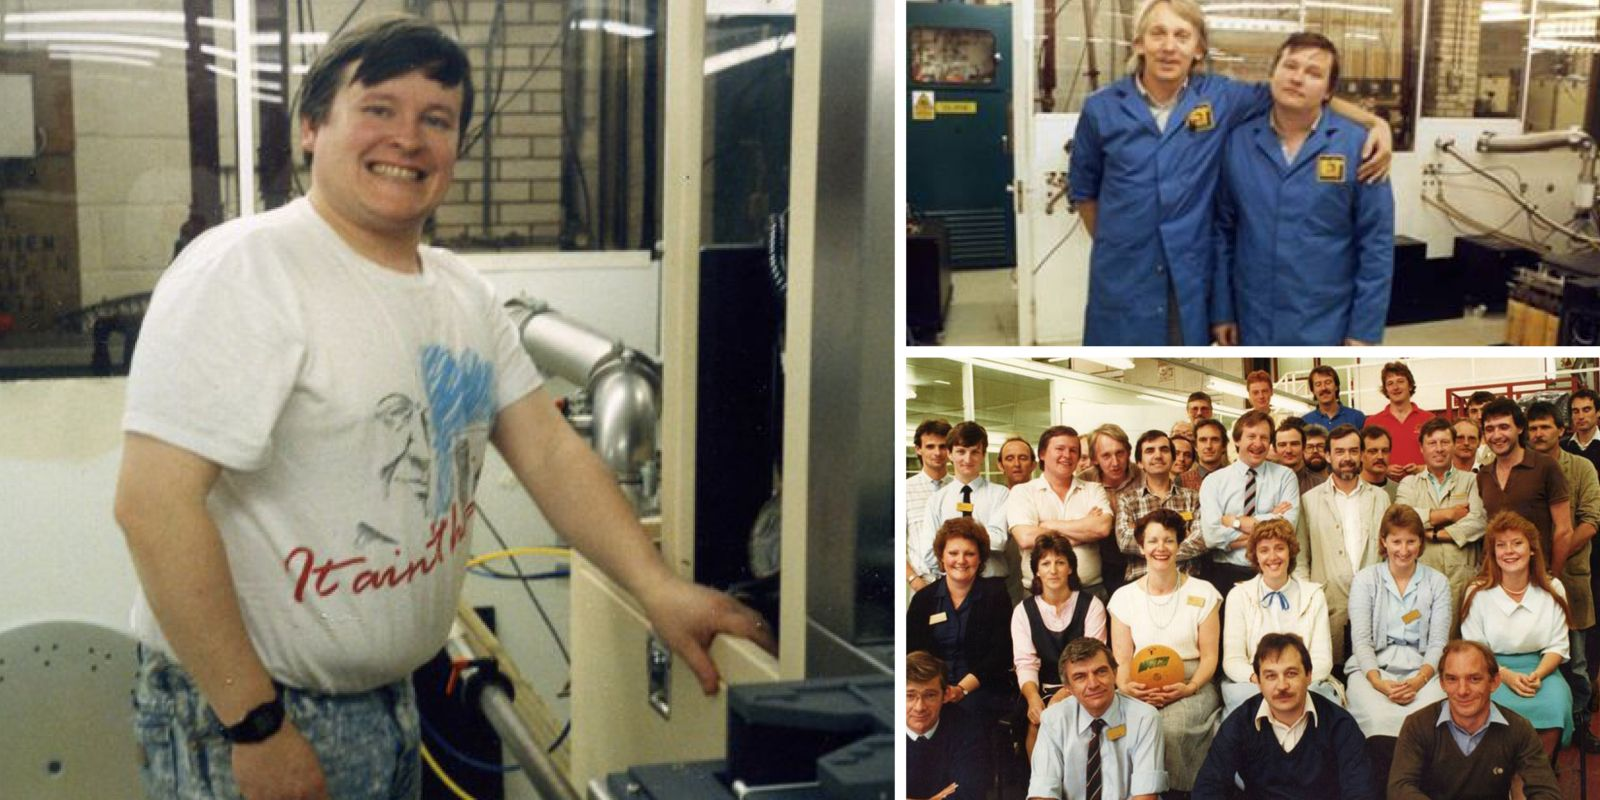 From a 5 year apprenticeship to far flung travels: Barry Tomkins's career in semiconductors